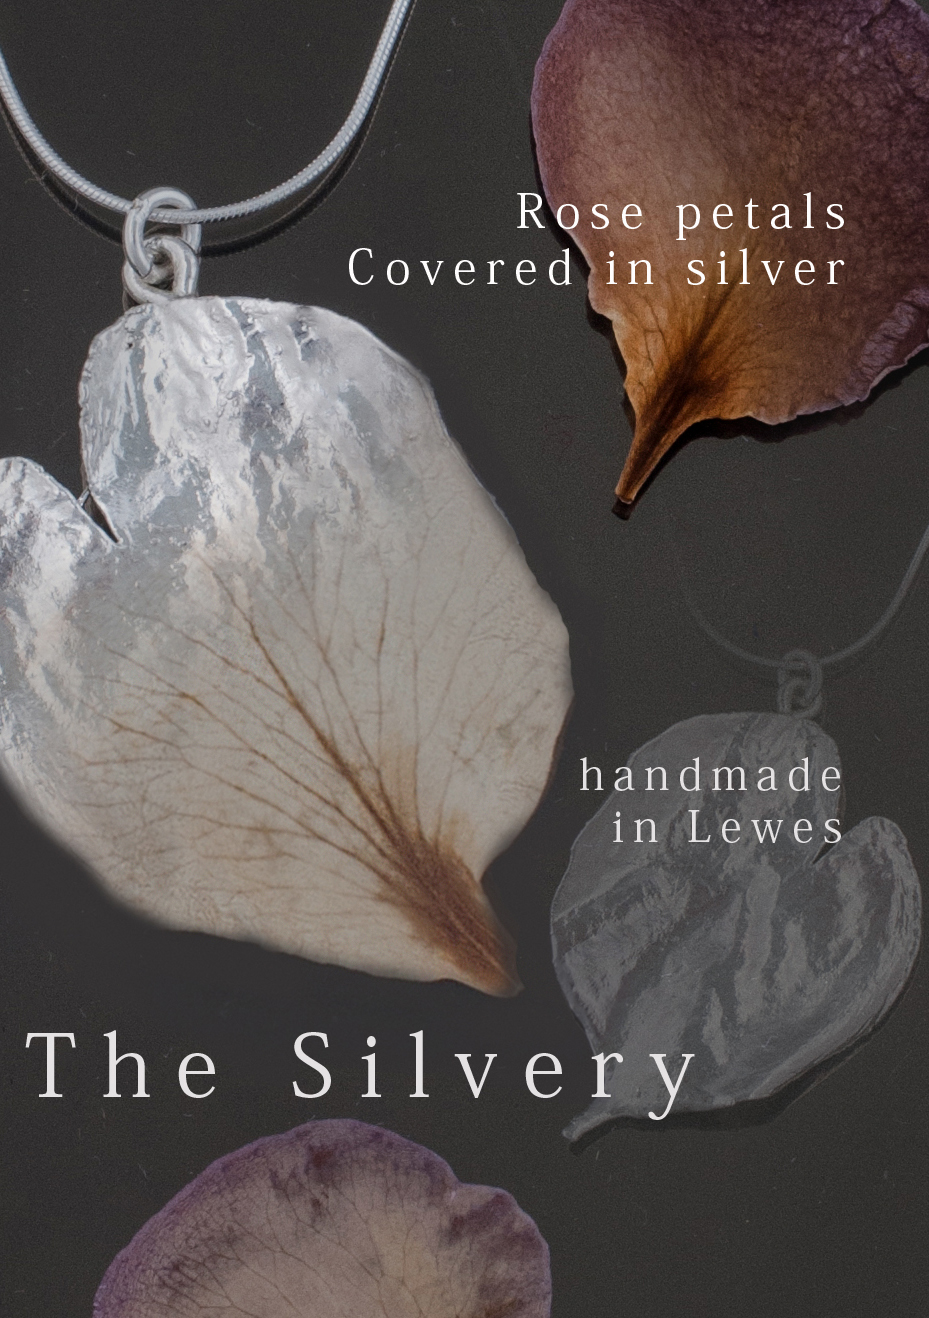 The Silvery Newsletter by 100Designs